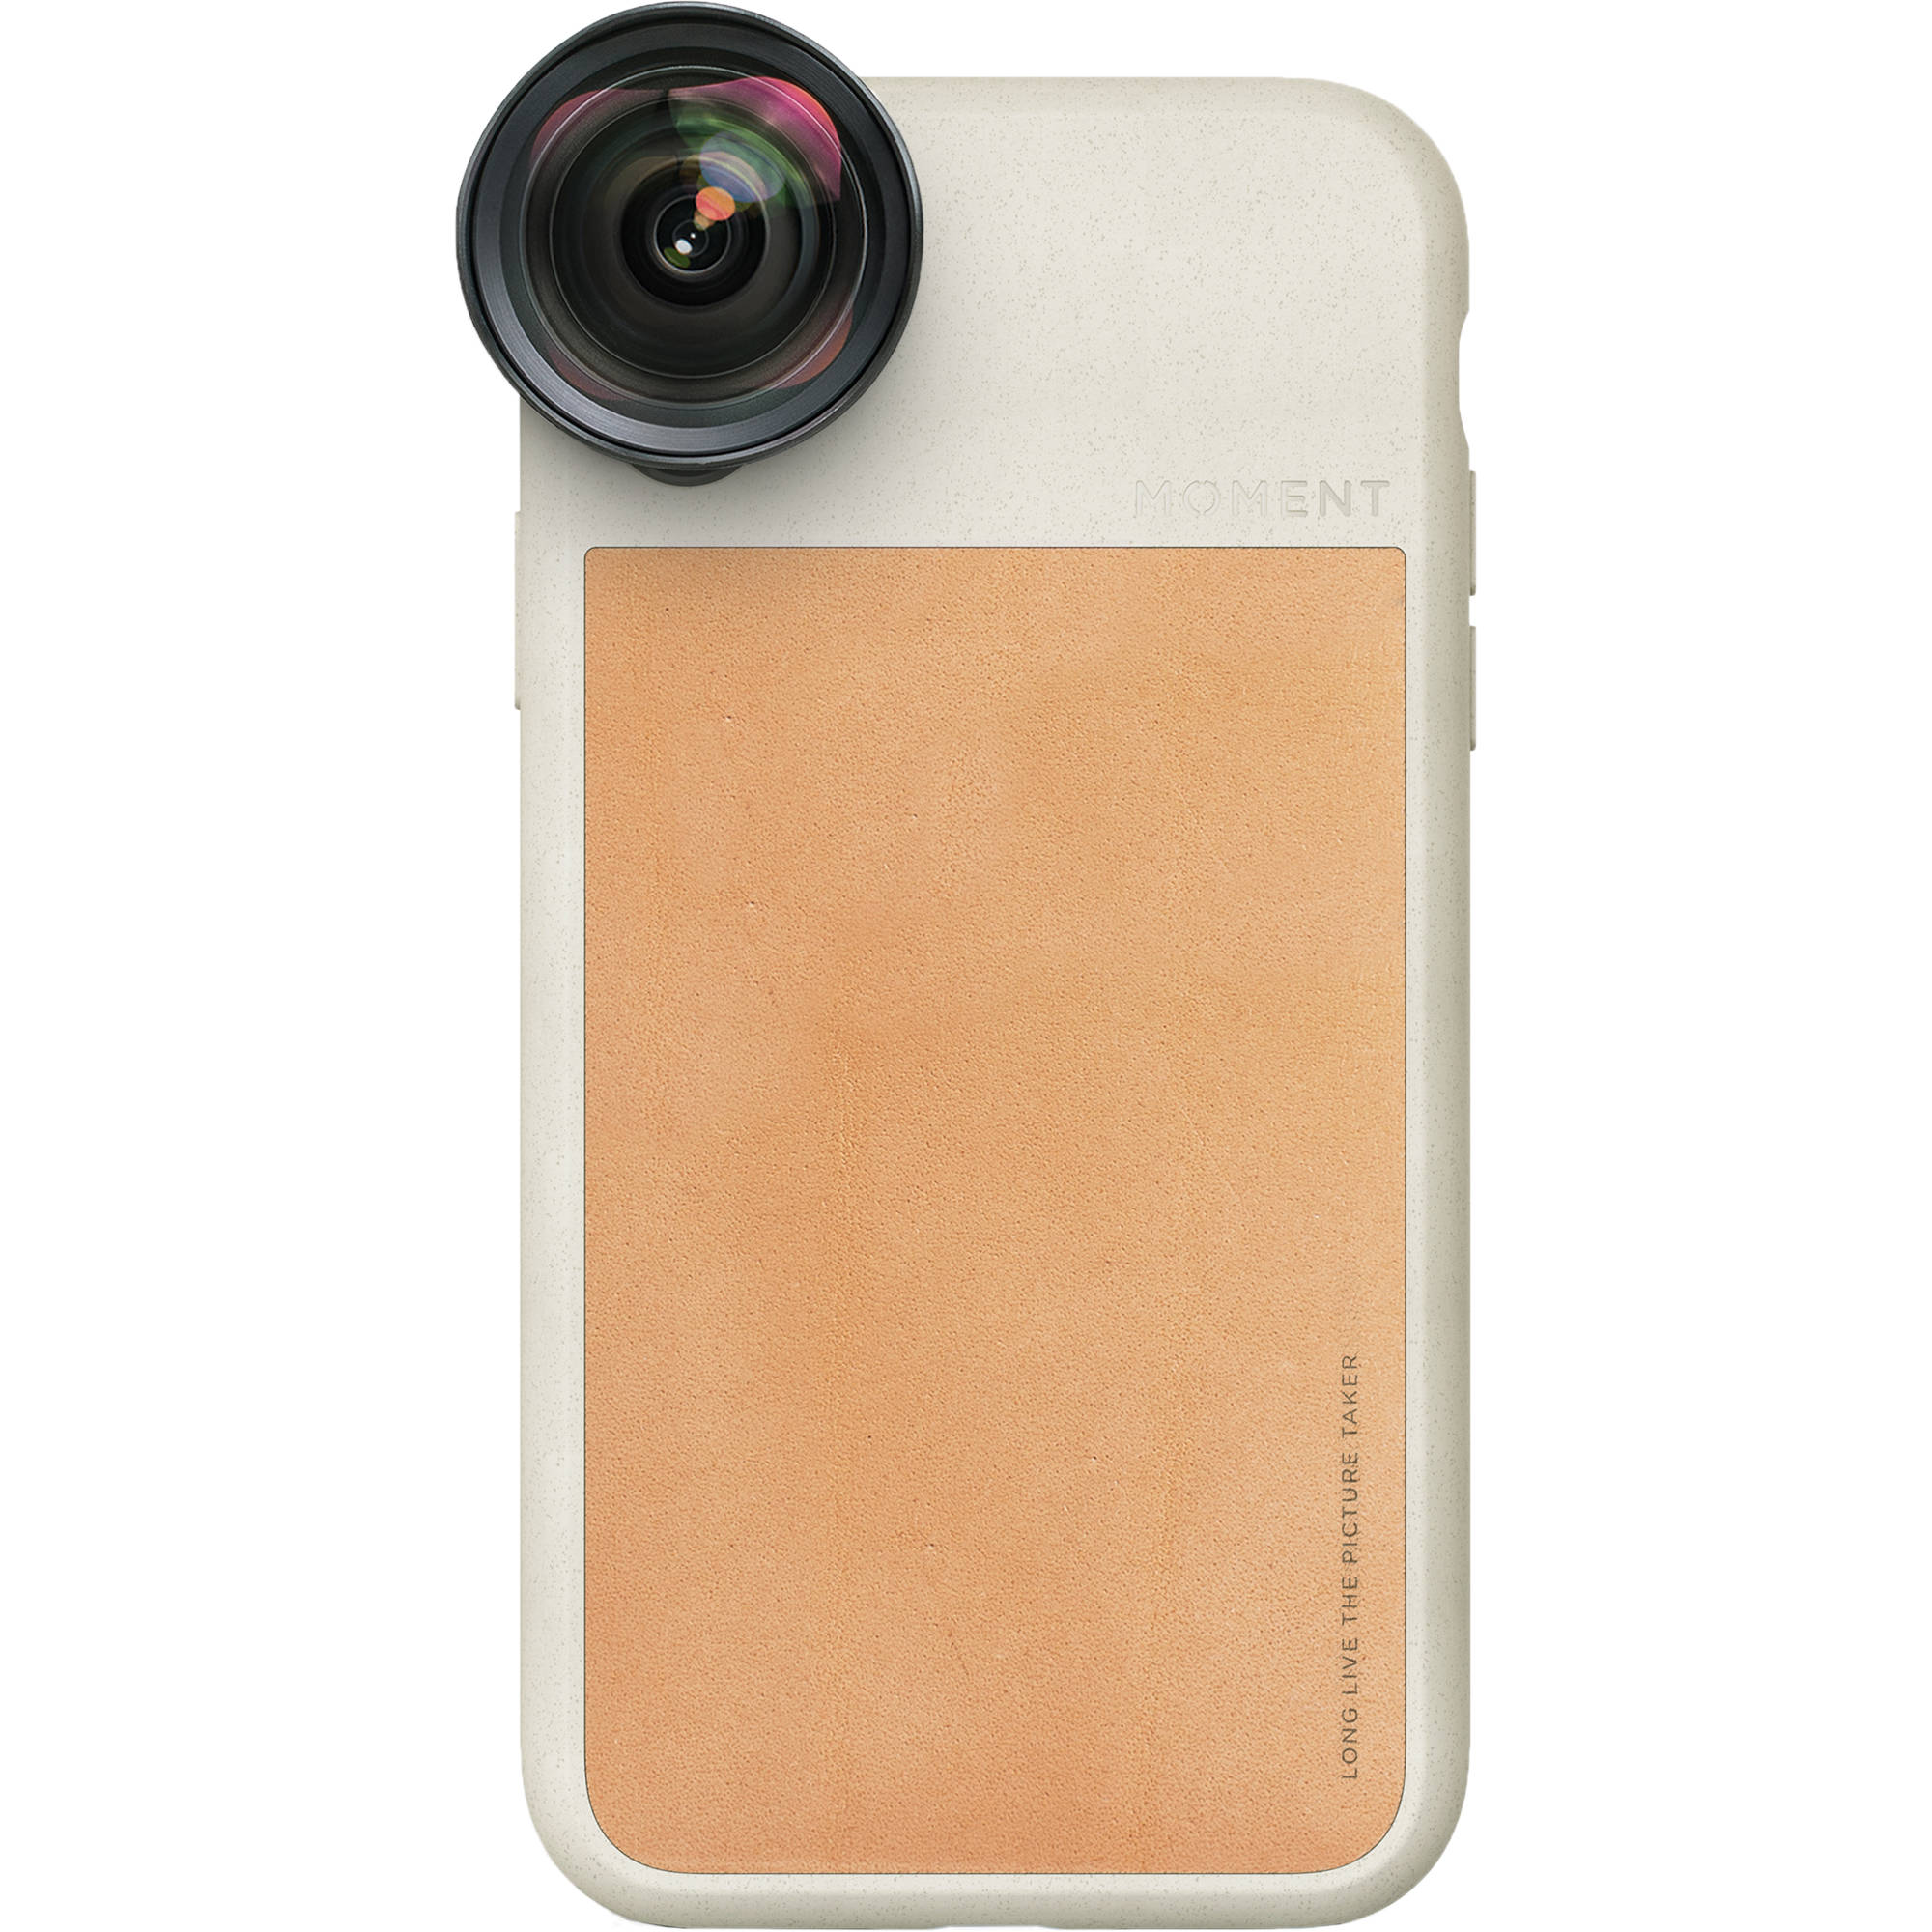 sale retailer e9b64 c6734 Moment Photo Case for the iPhone XR (Tan Leather)